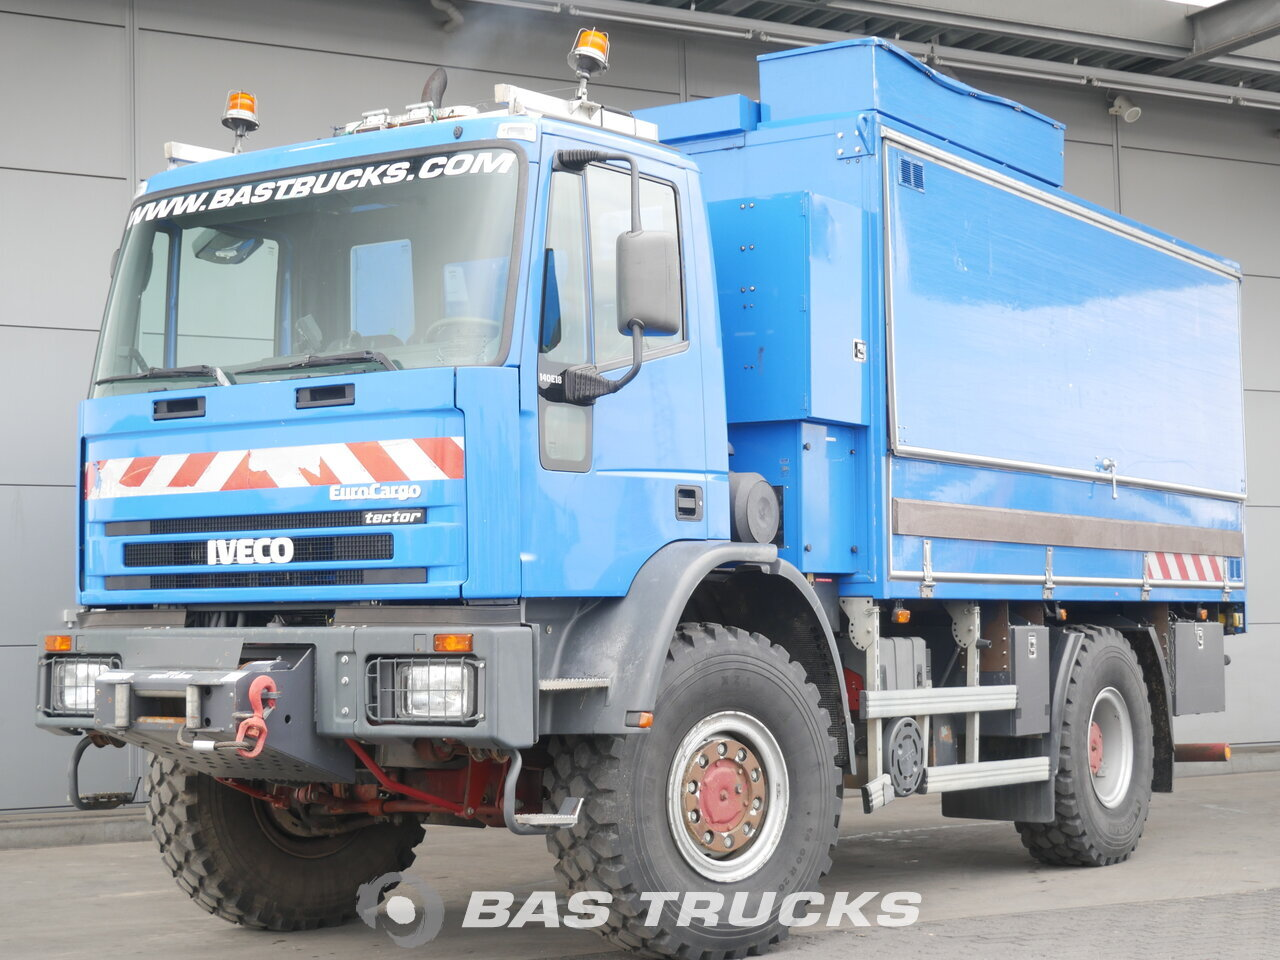 For sale at BAS Trucks: IVECO Eurocargo 140E18 4X4 07/2004